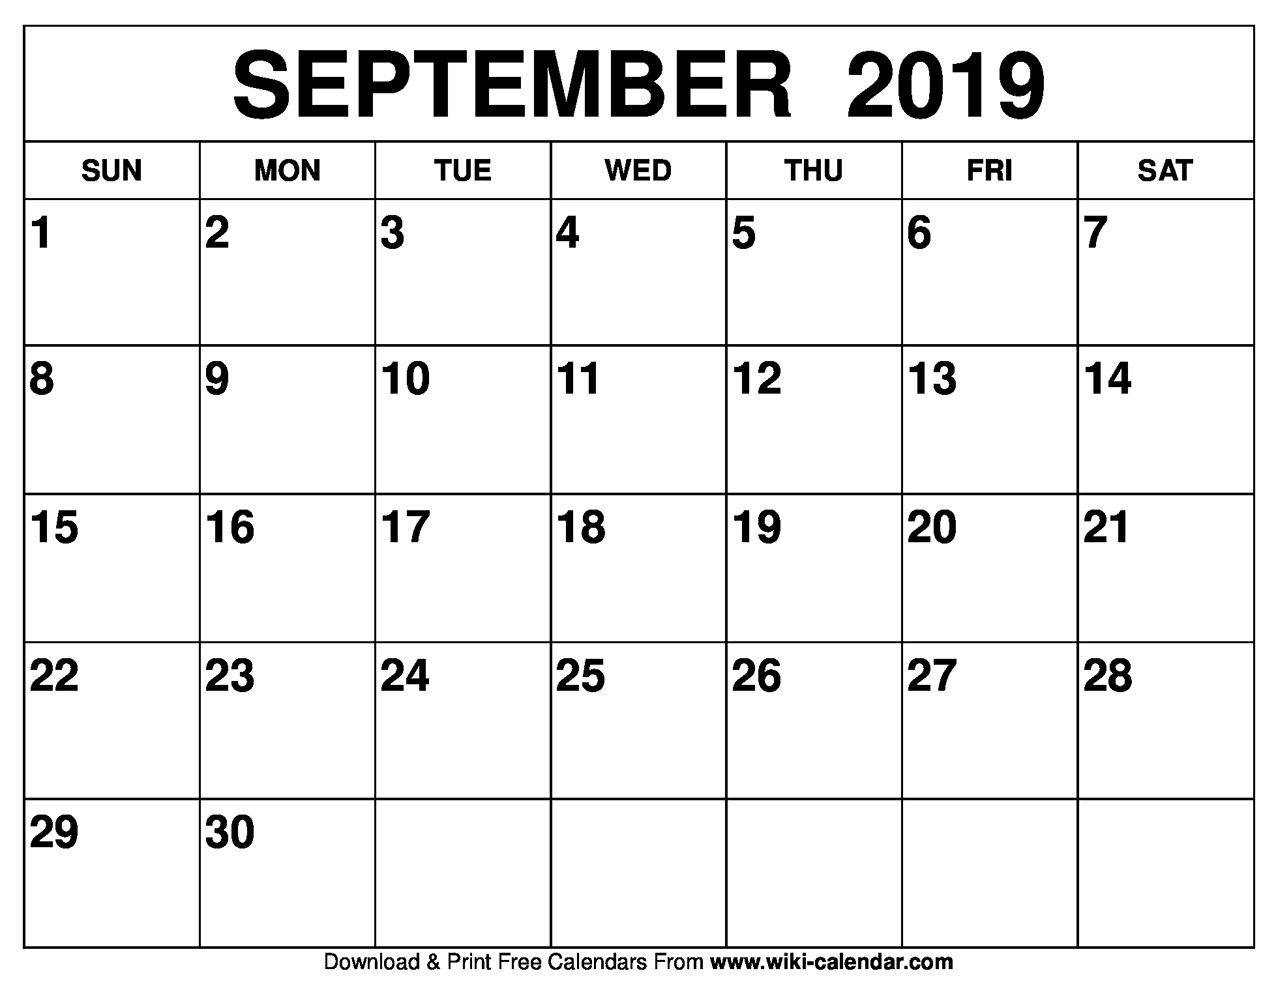 Colorful Free September Calendar Templates 2019 | Calendar Format within Colorful Free September Calendar Templates